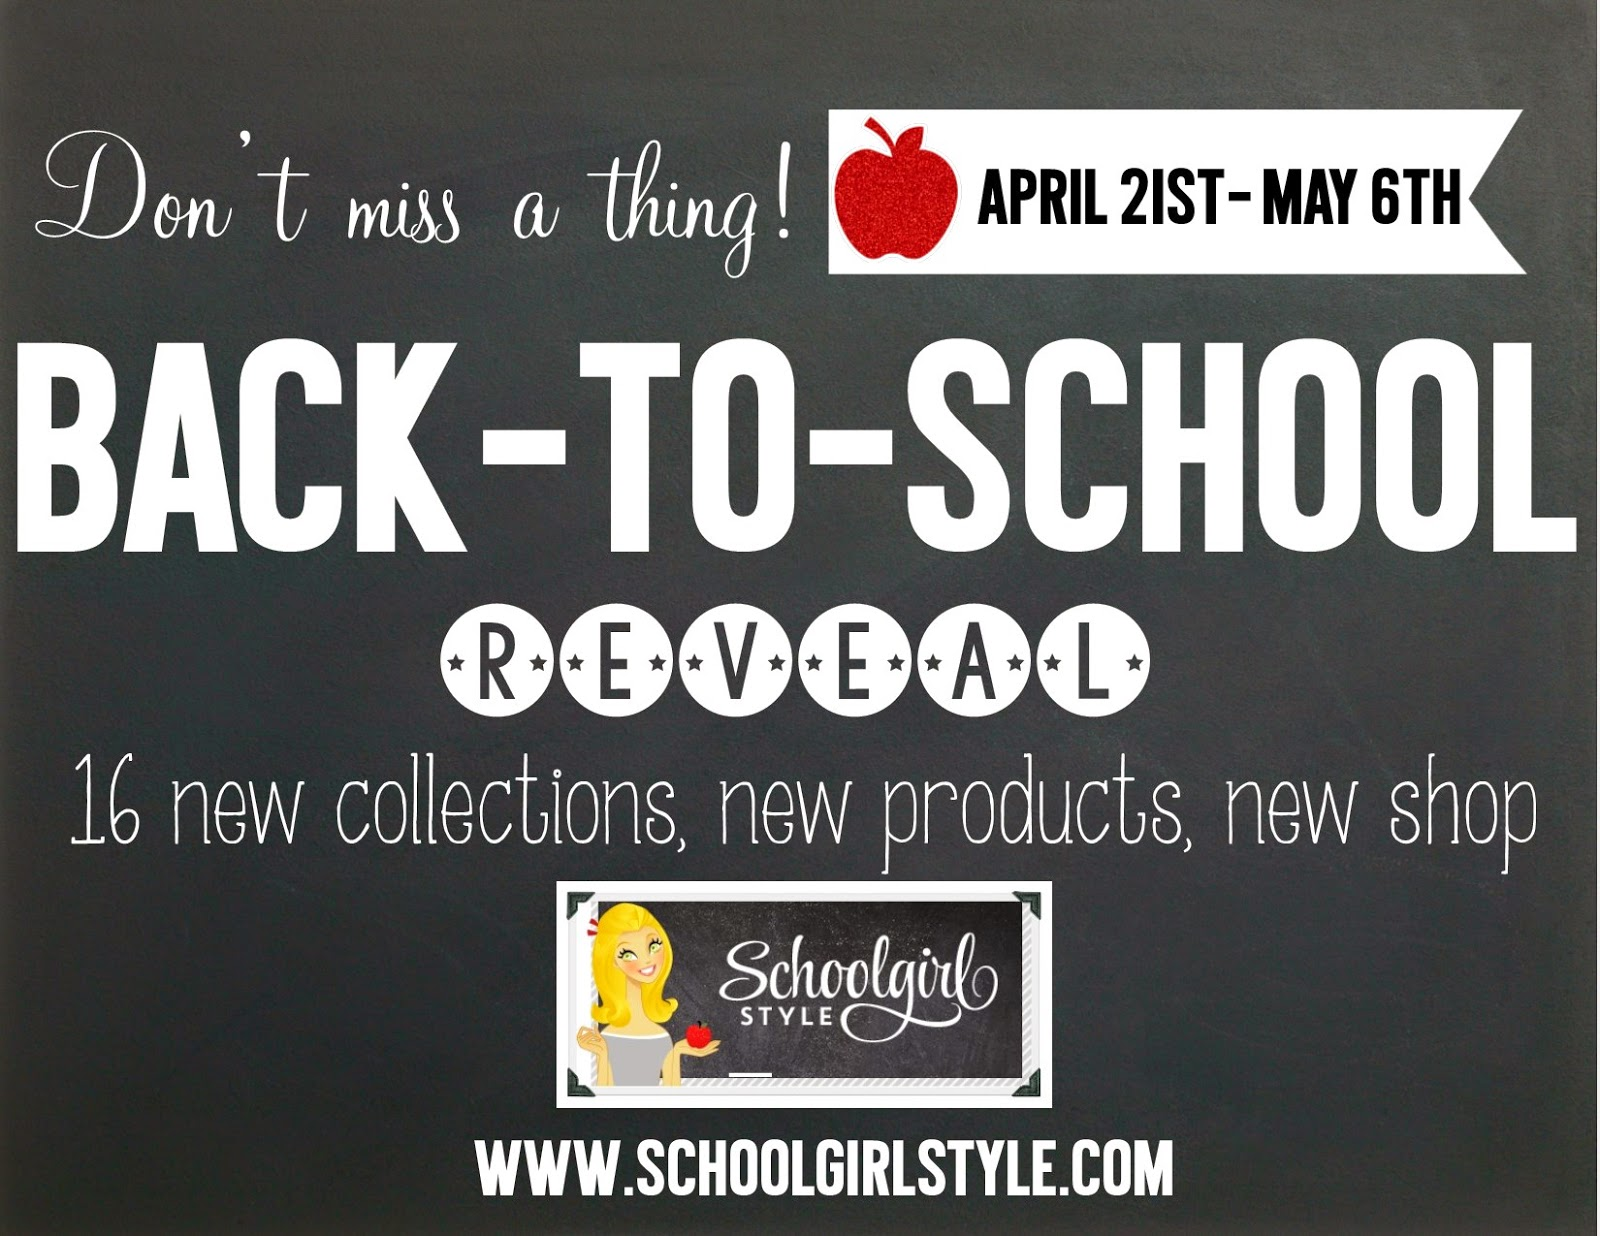 2014 Back to School reveal from Schoolgirl Style